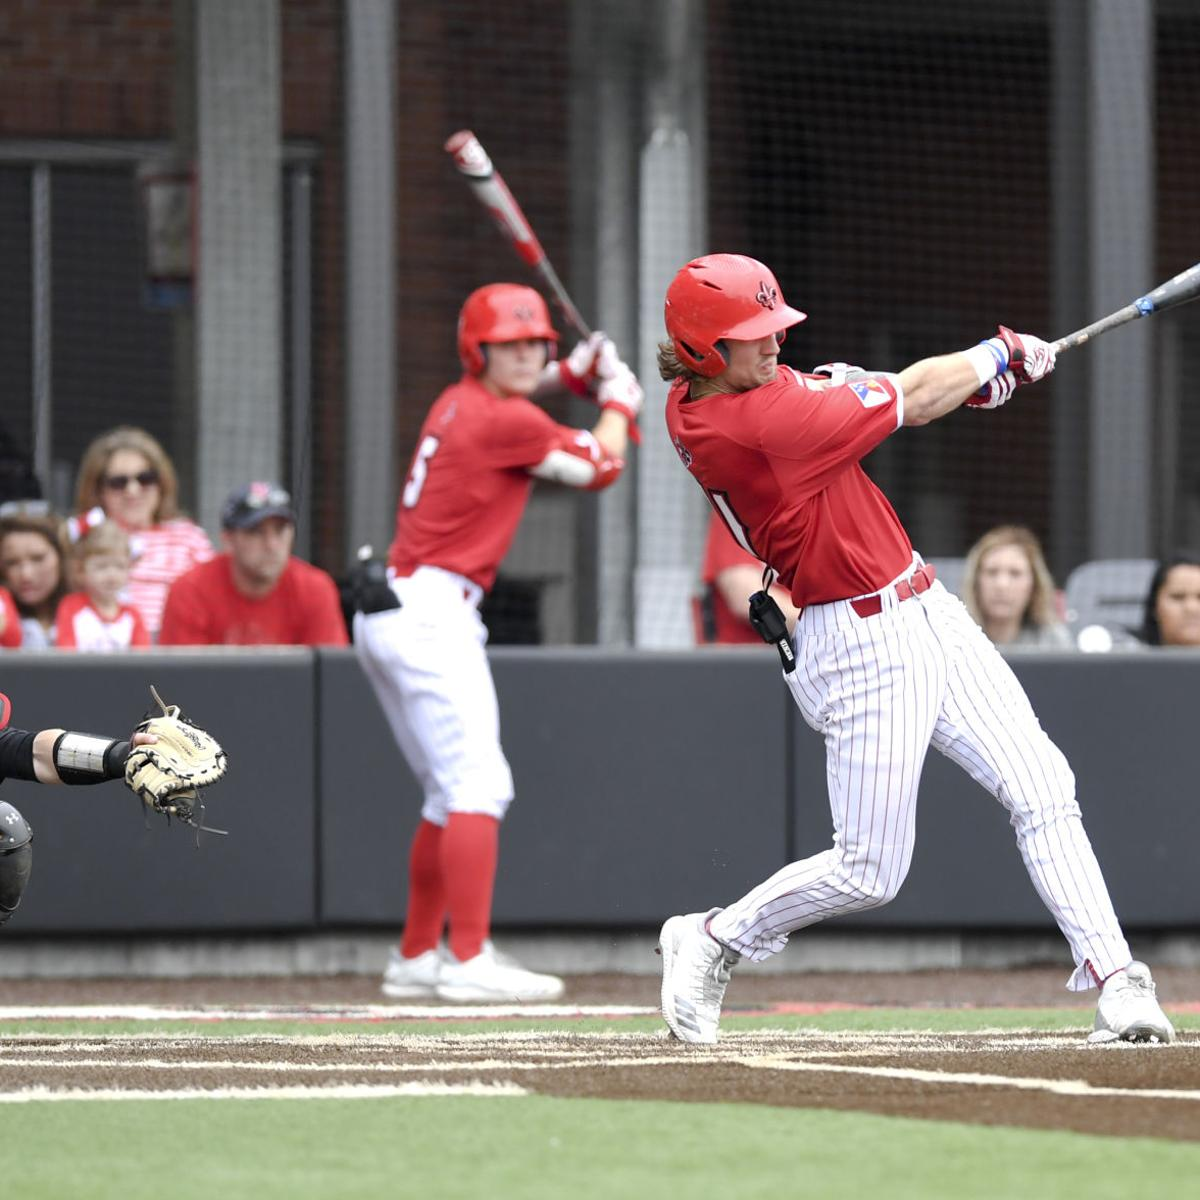 Perrin, Schultz carry Cajuns to key win to claim first Sun